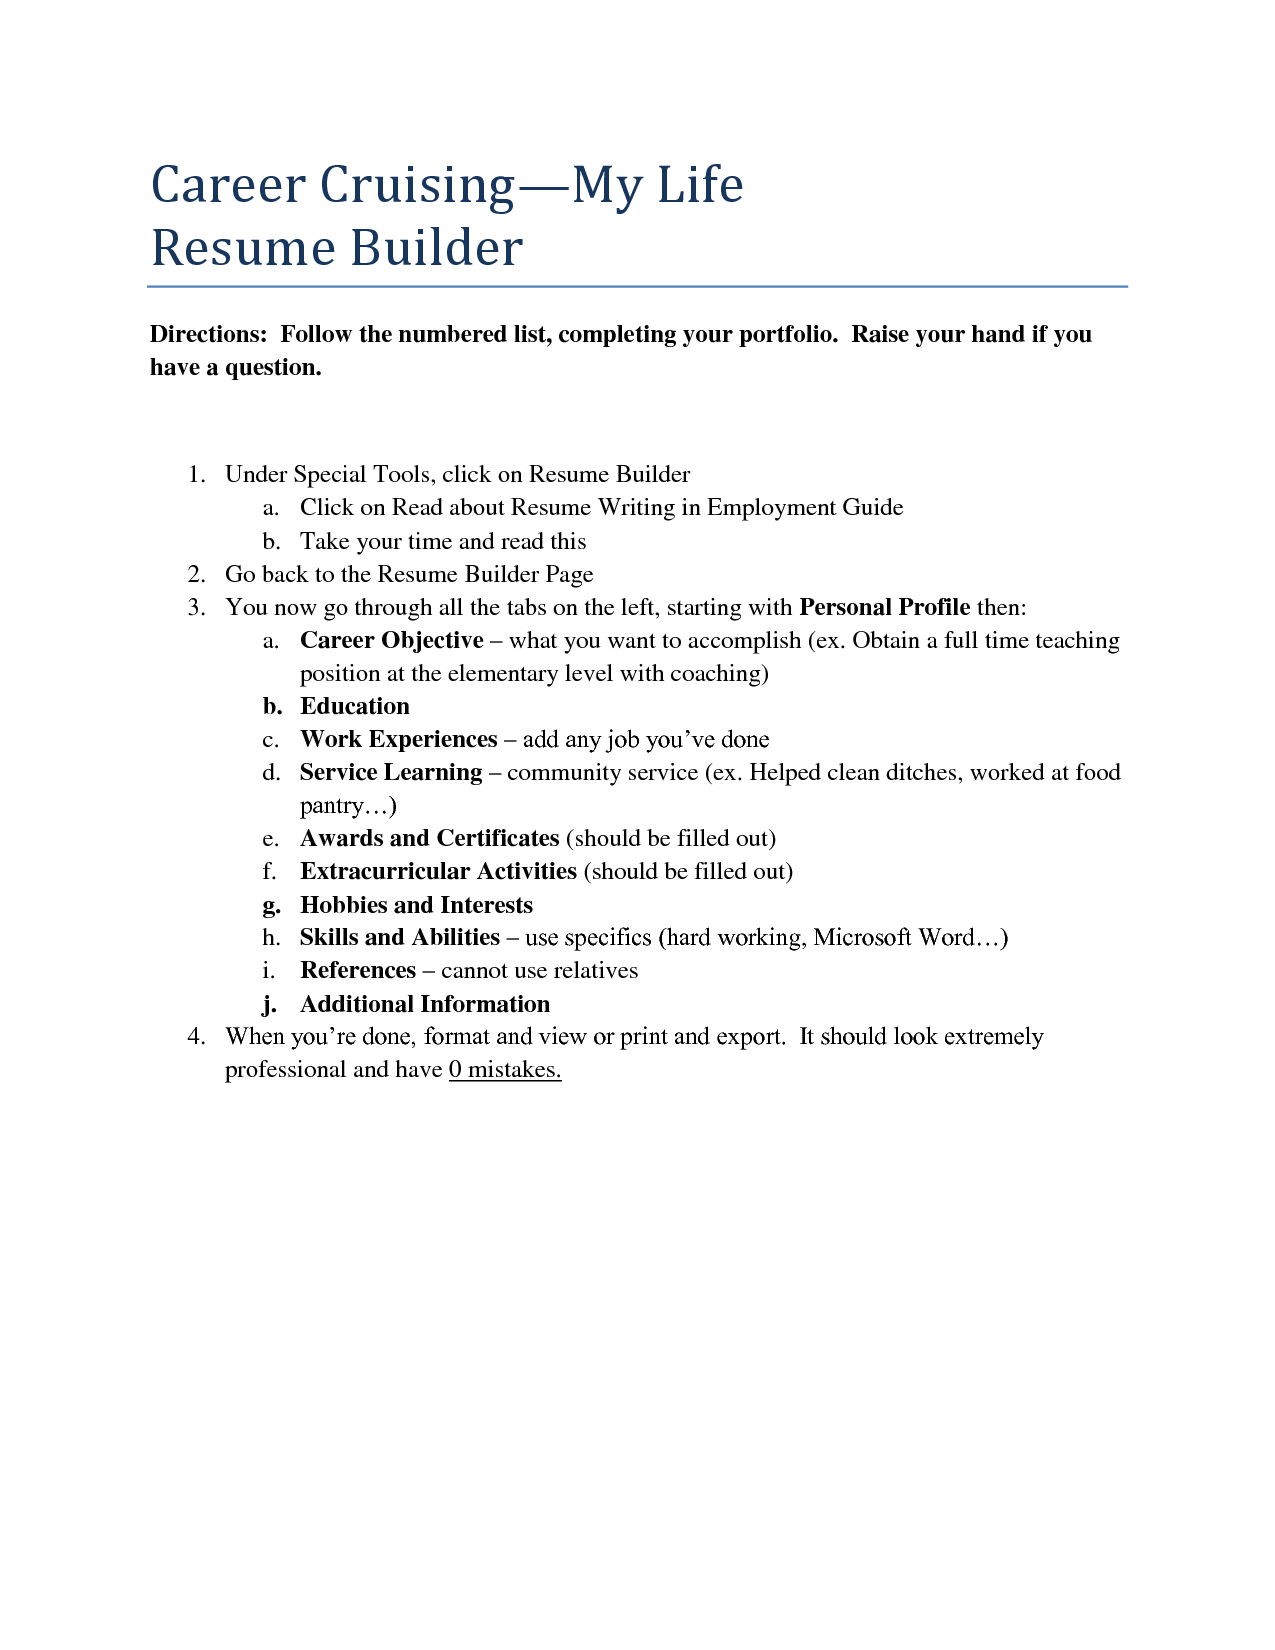 Career Builder Resume Custom Career Builder Resume Samples Templates And Builders Qbdrj  Home